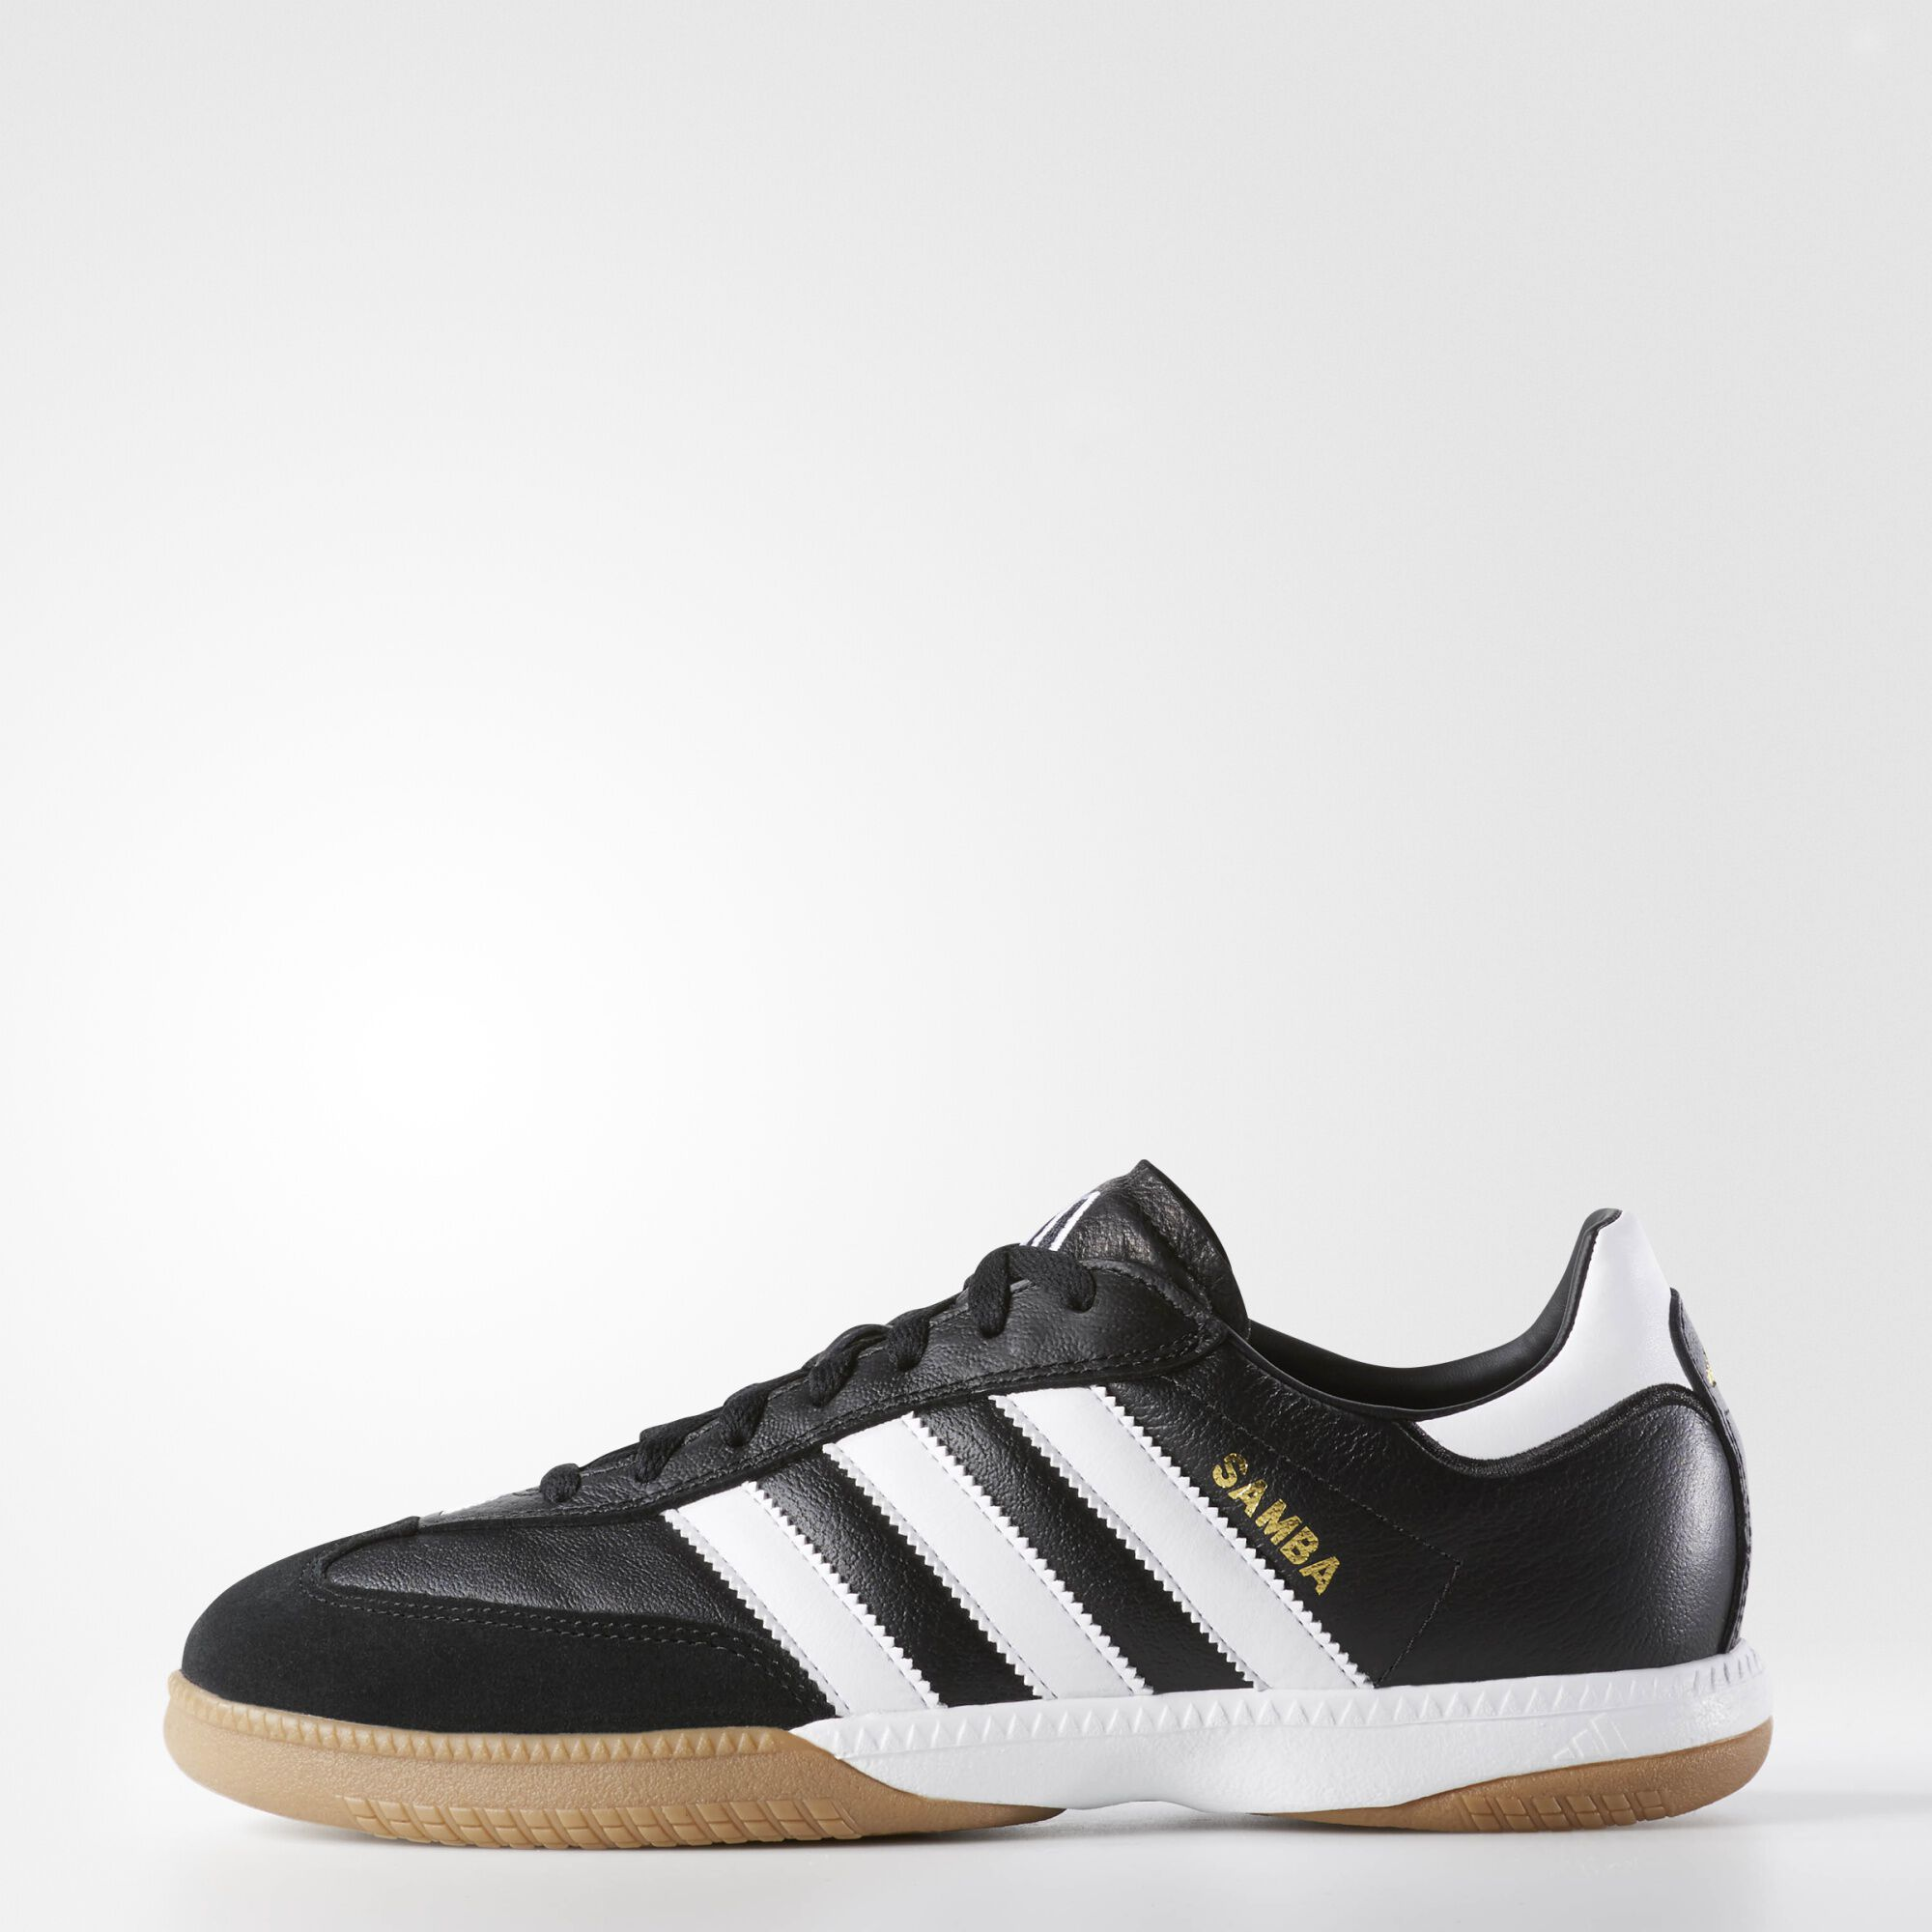 Soccer Shoes Size